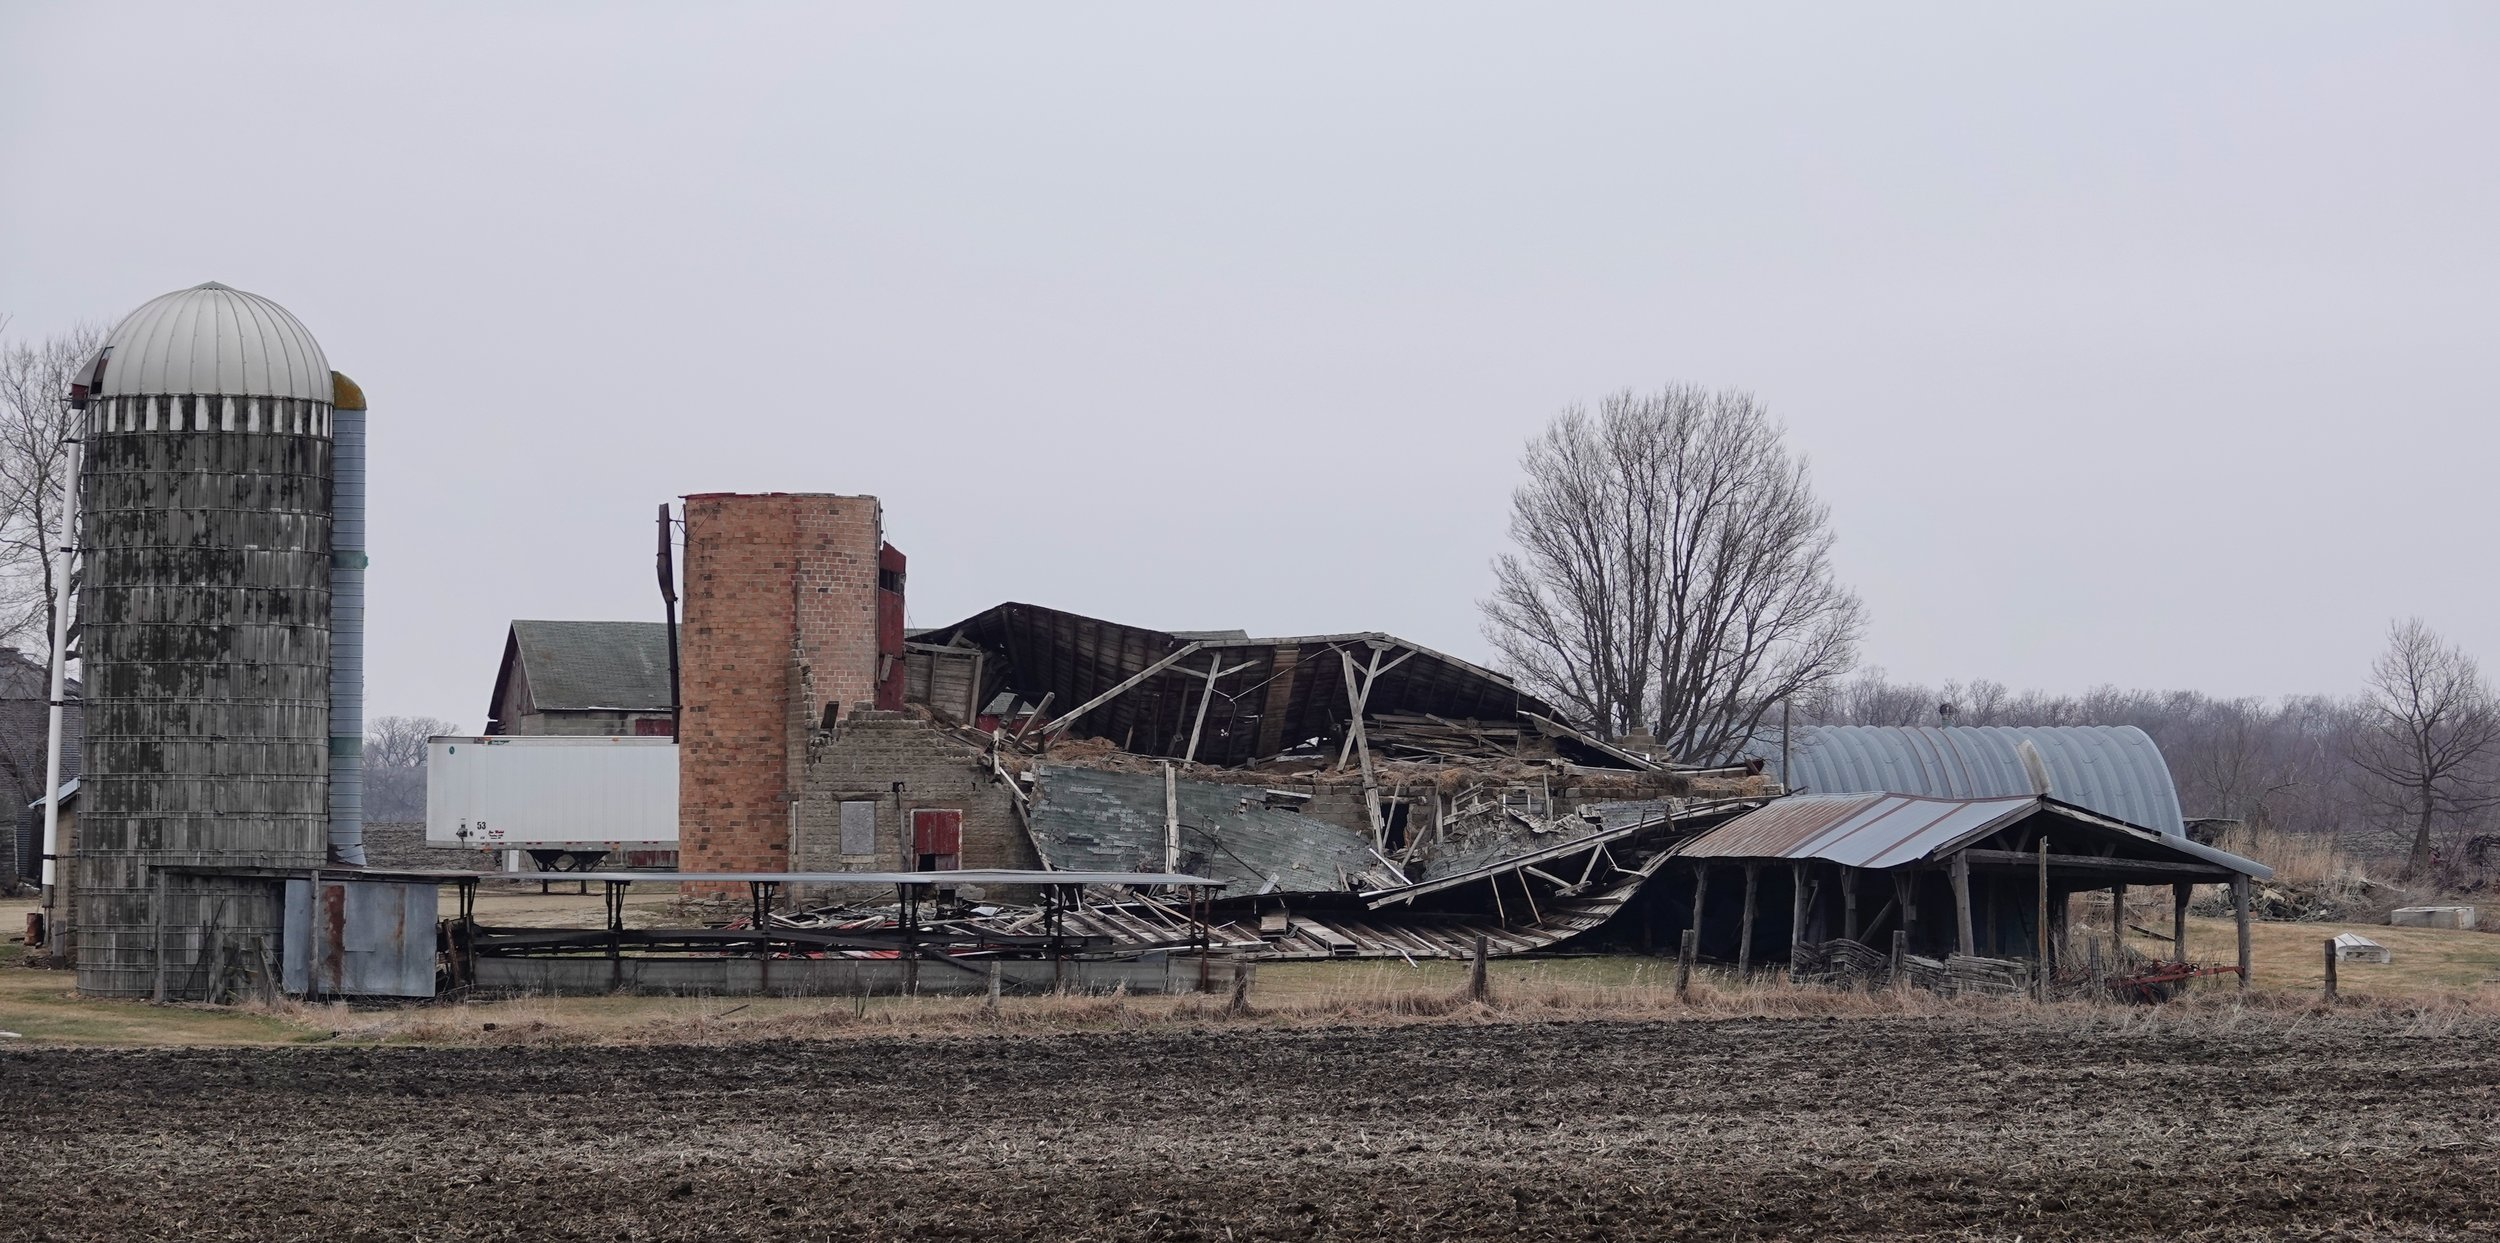 Time has knocked the wind out of this barn.